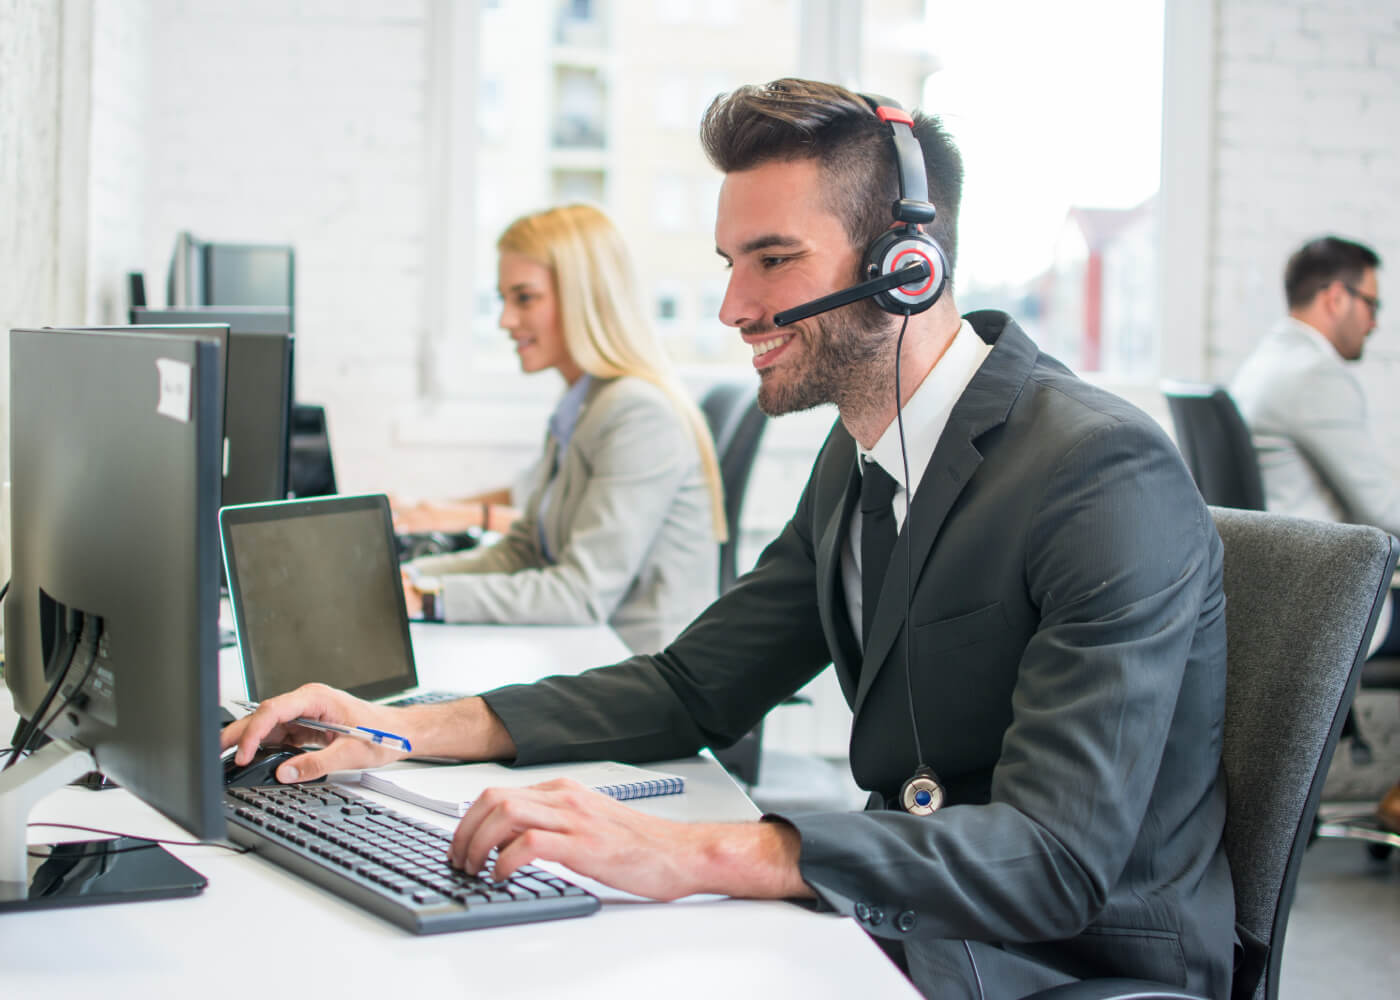 A customer service representative man wearing headphone attending the call with a smile on his face